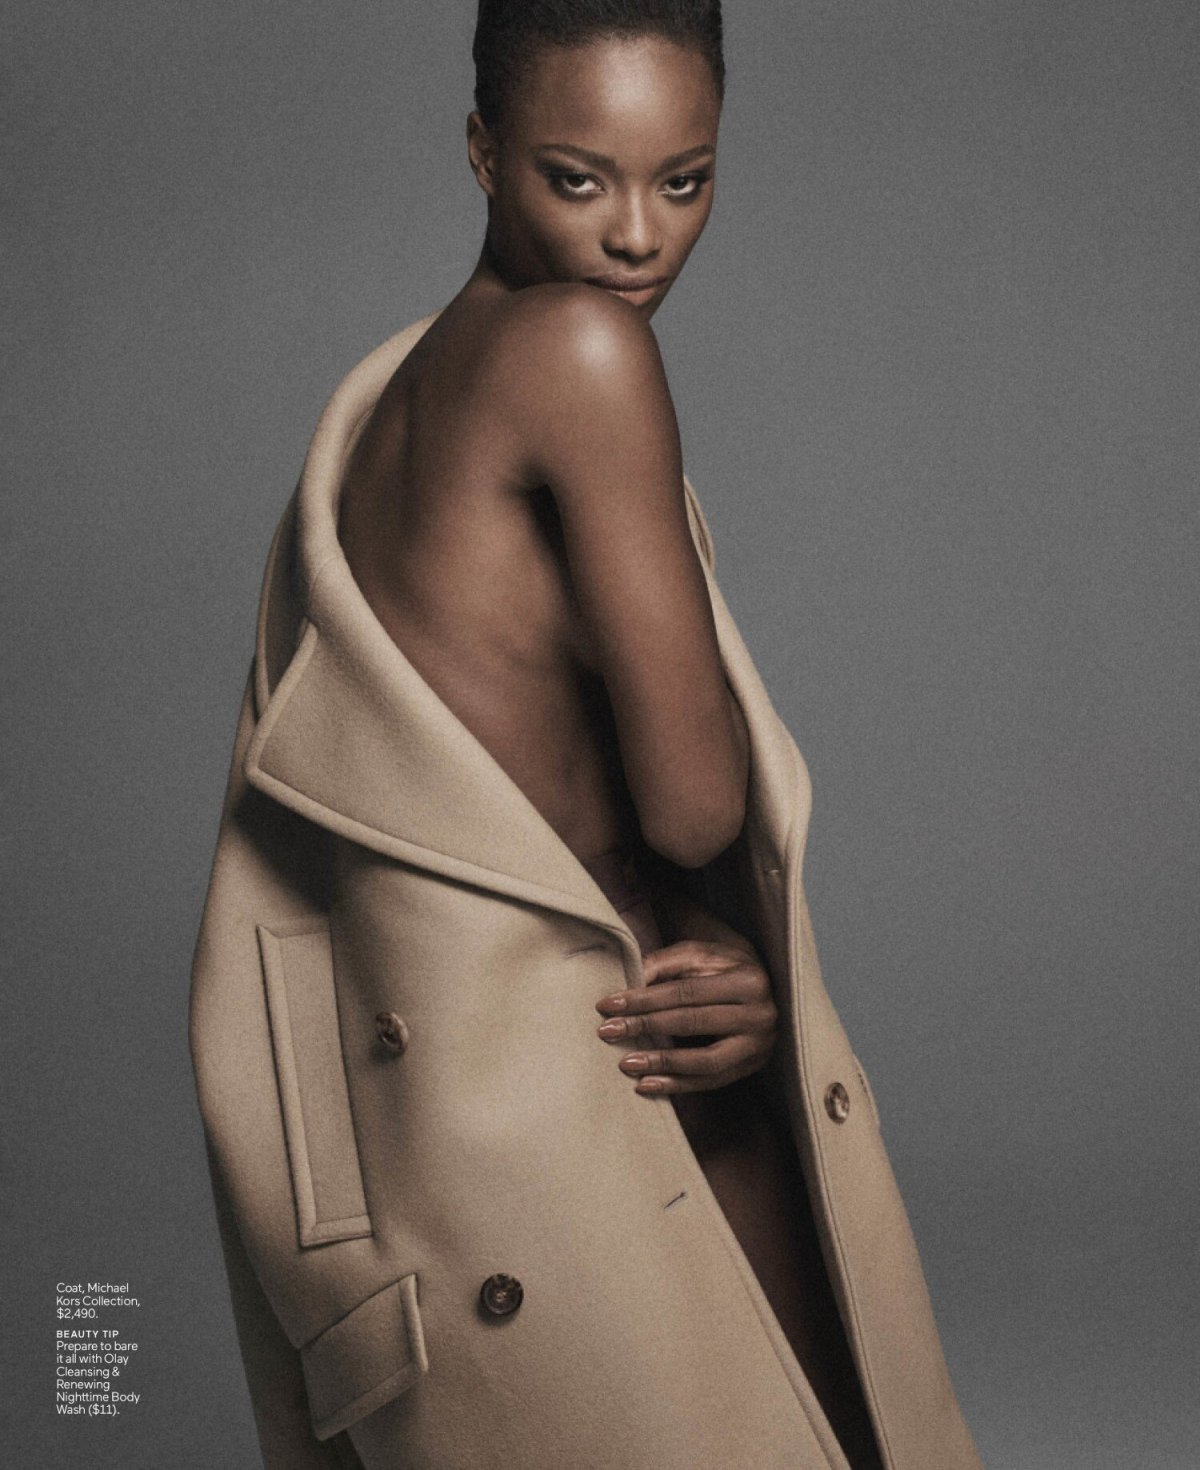 Mayowa Nicholas for ELLE US September 2021. Photographed by Chris Colls and styled by Alex White.